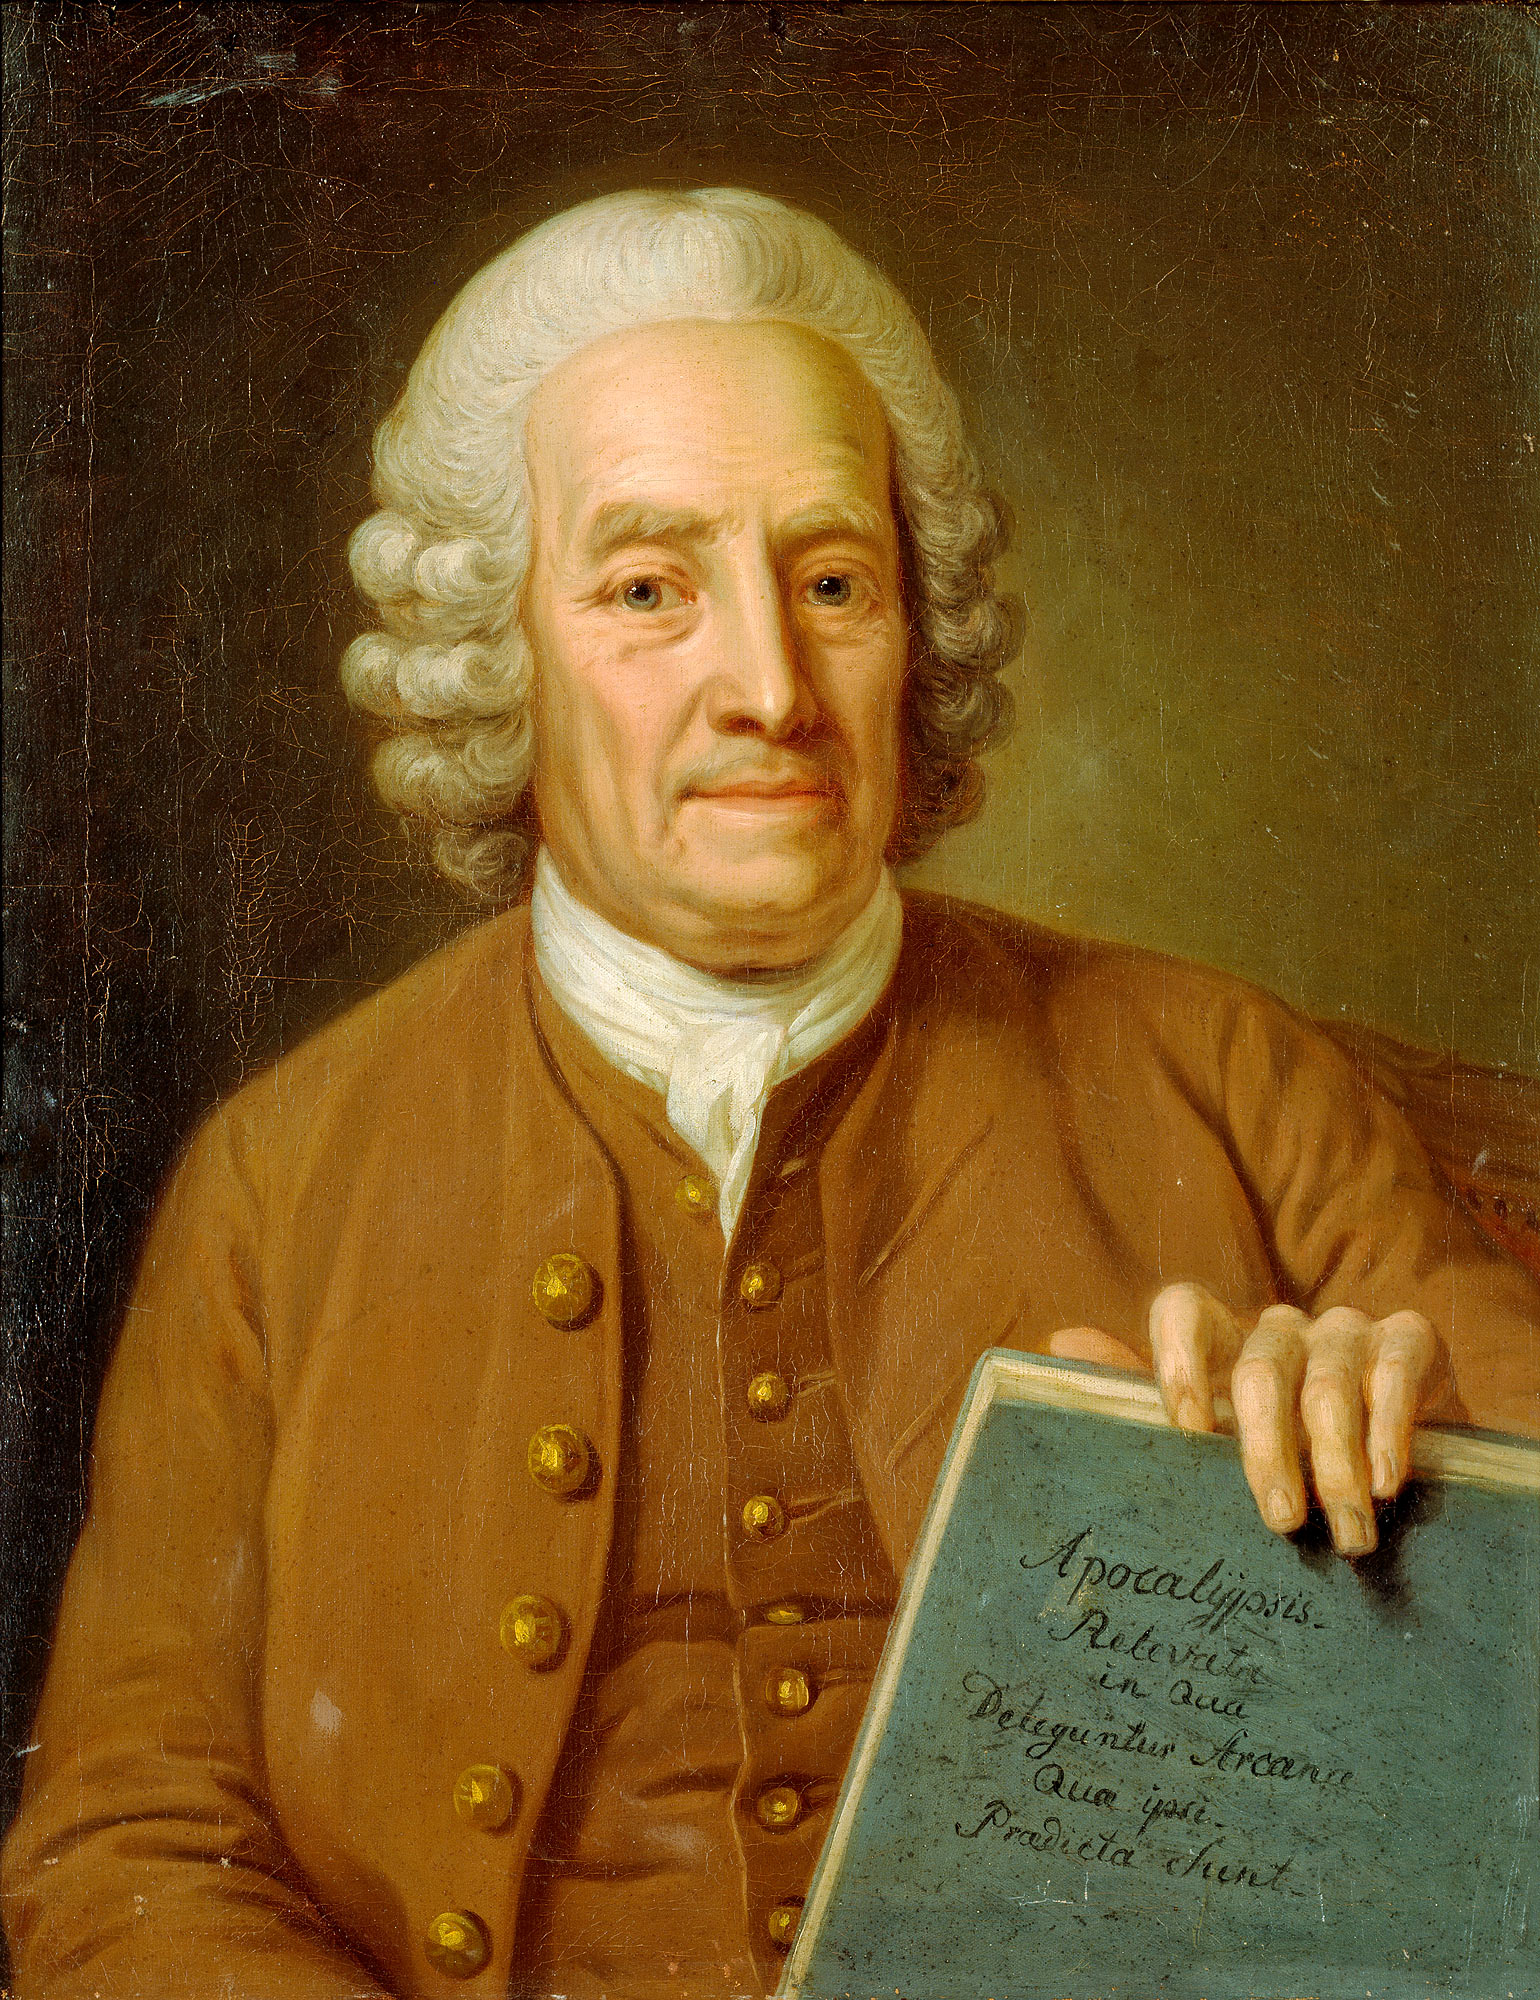 Emanuel Swedenborg's work, especially Heaven a...